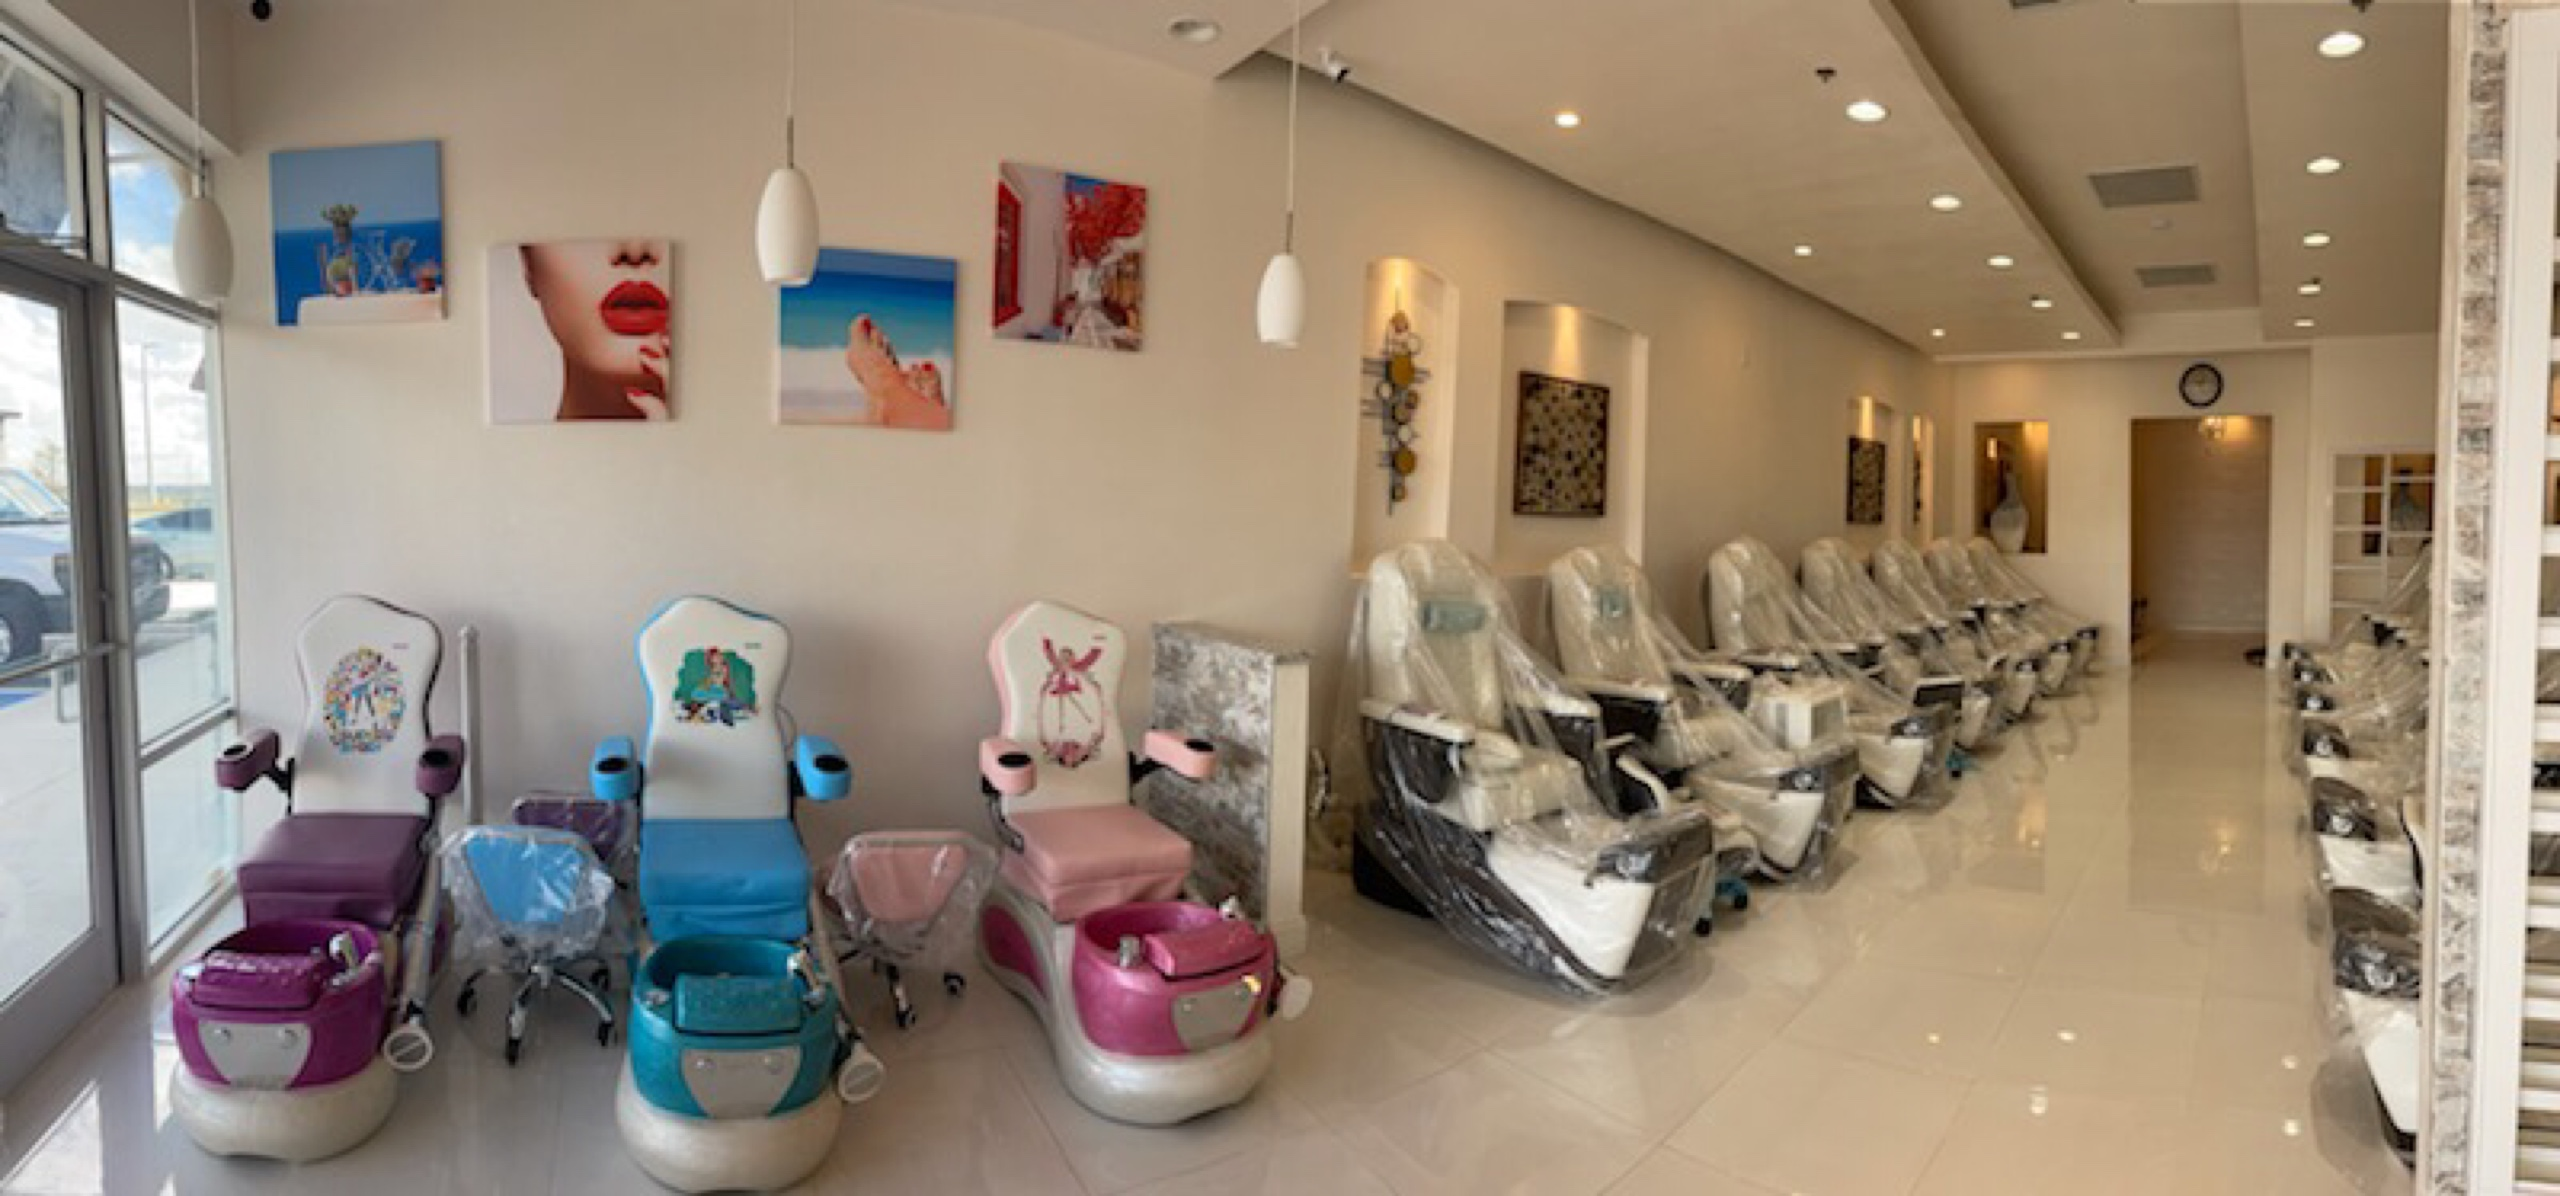 Bliss Nail Lounge - Nail salon Clermont, FL 34711